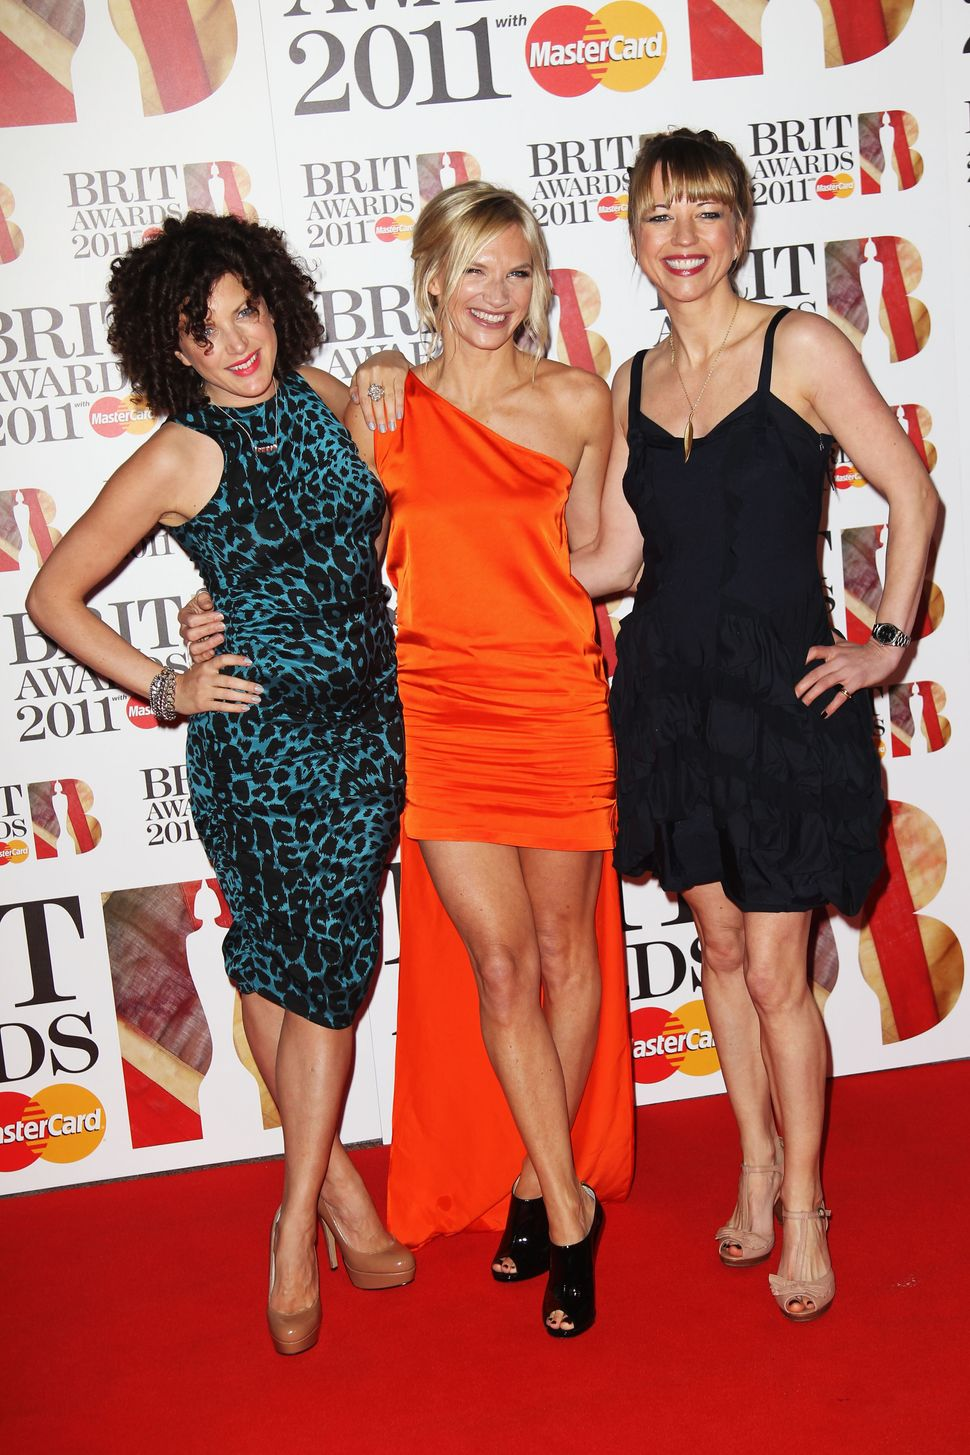 Annie Mac, Jo Whiley and Sara Cox at The Brit Awards in 2011